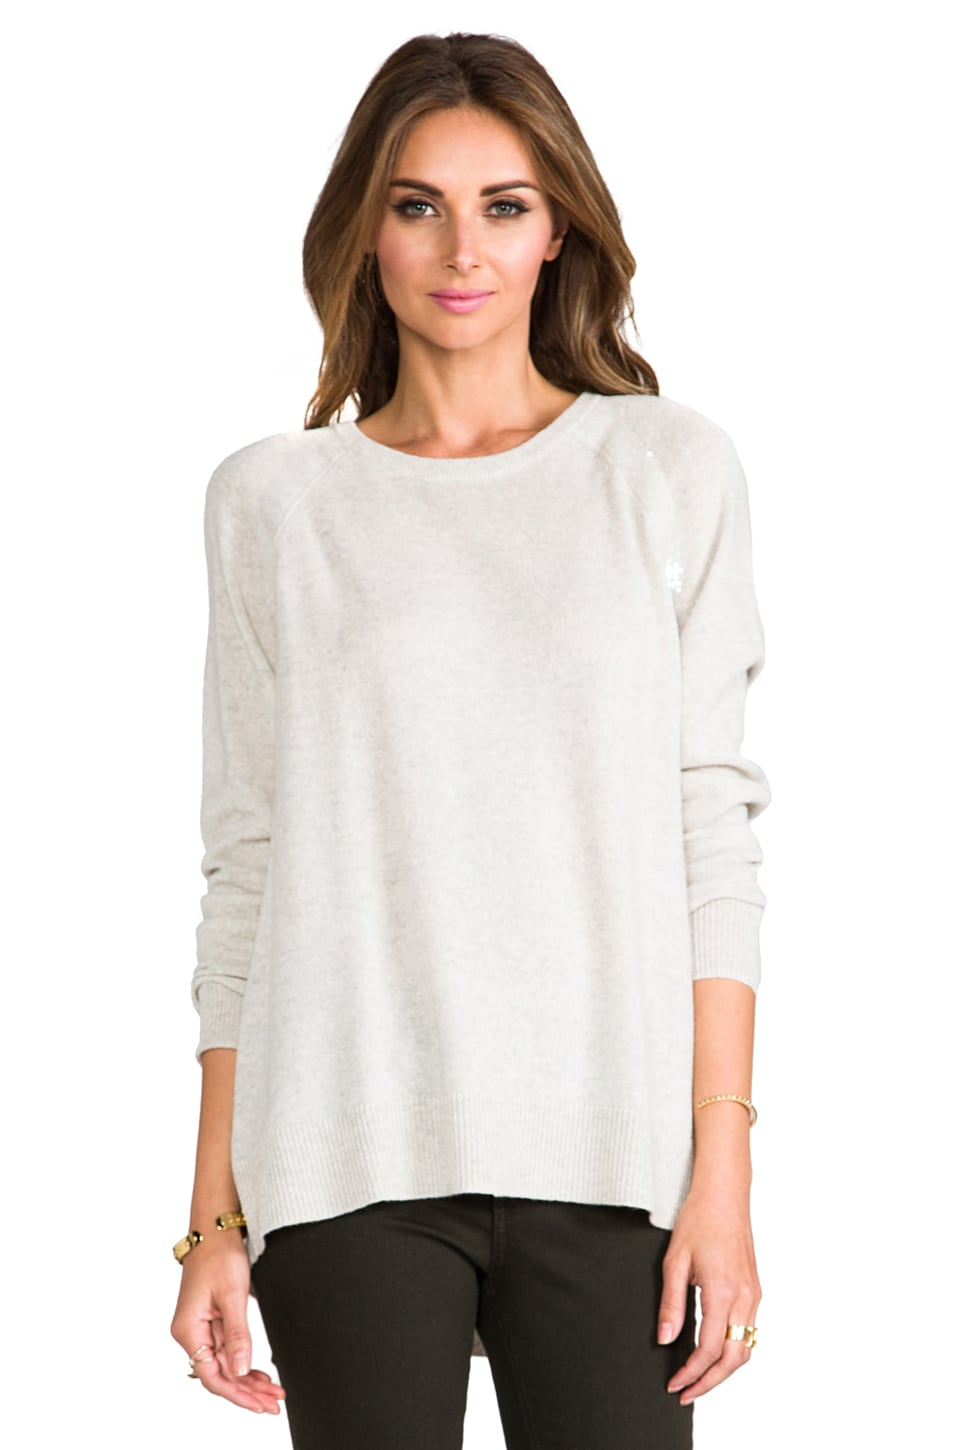 Autumn Cashmere Pleat Back Sequin Raglan Crew in Hemp